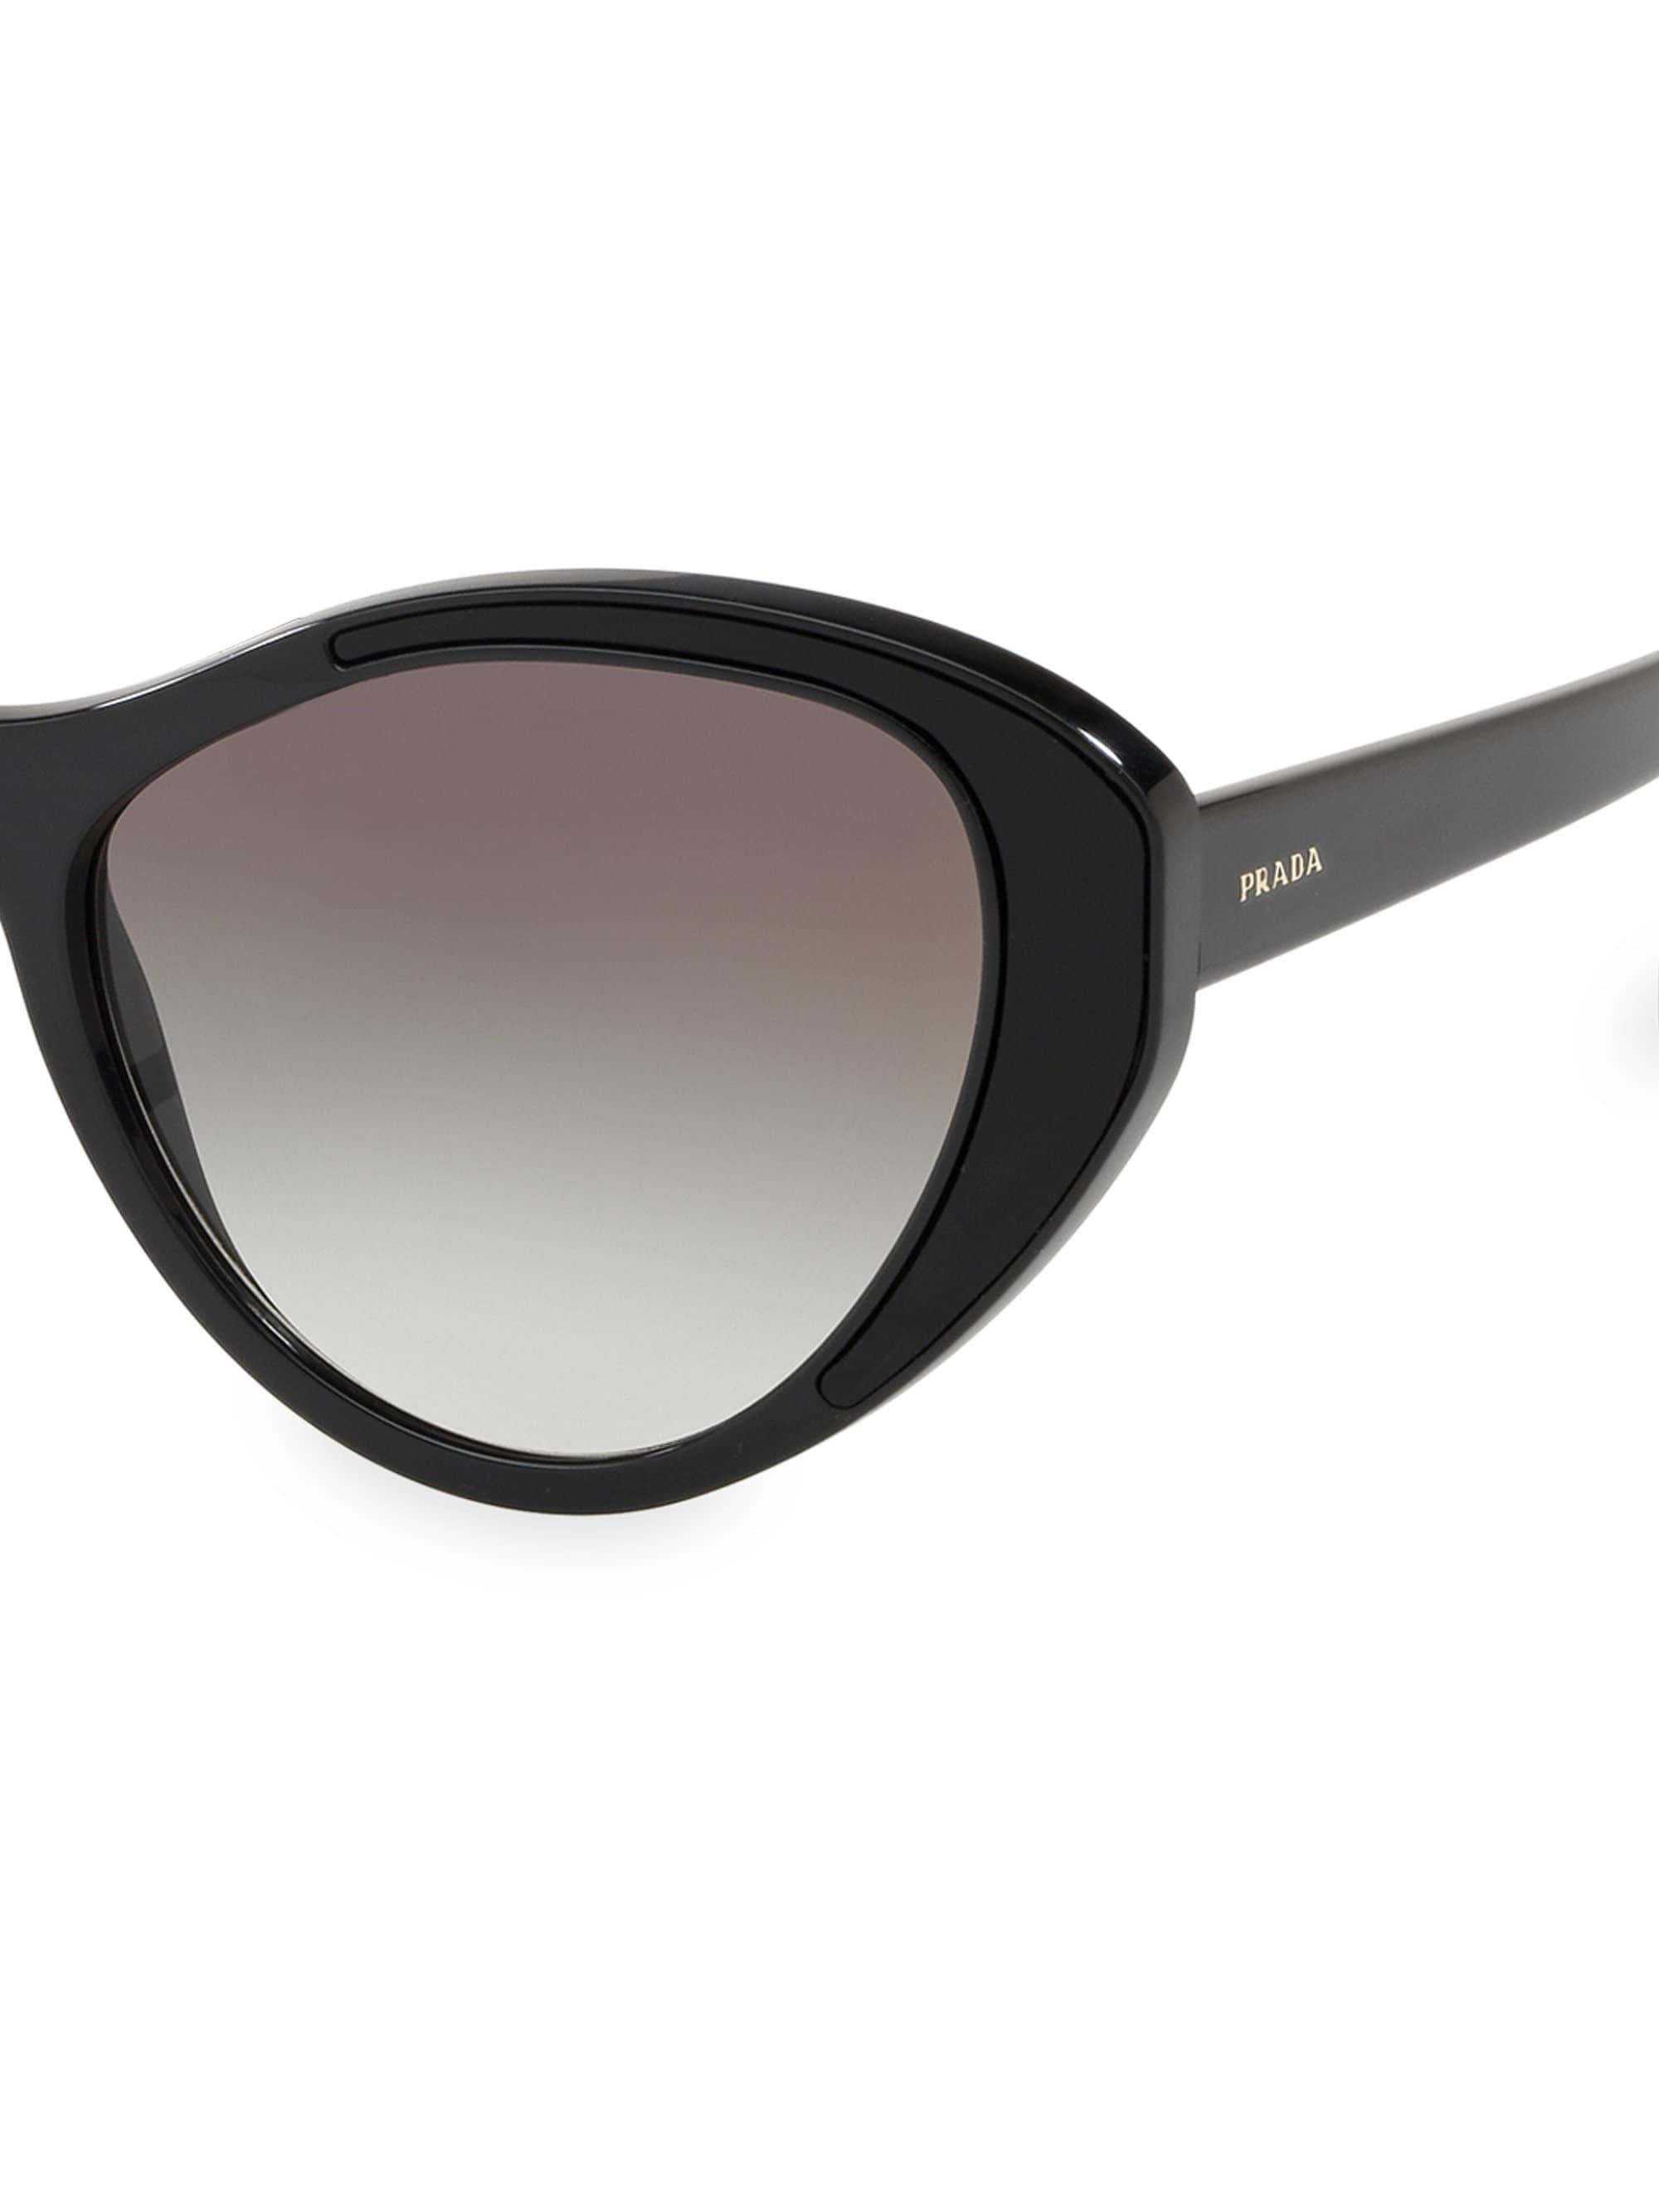 d8352b624d Prada - Black 55mm Butterfly Sunglasses - Lyst. View fullscreen